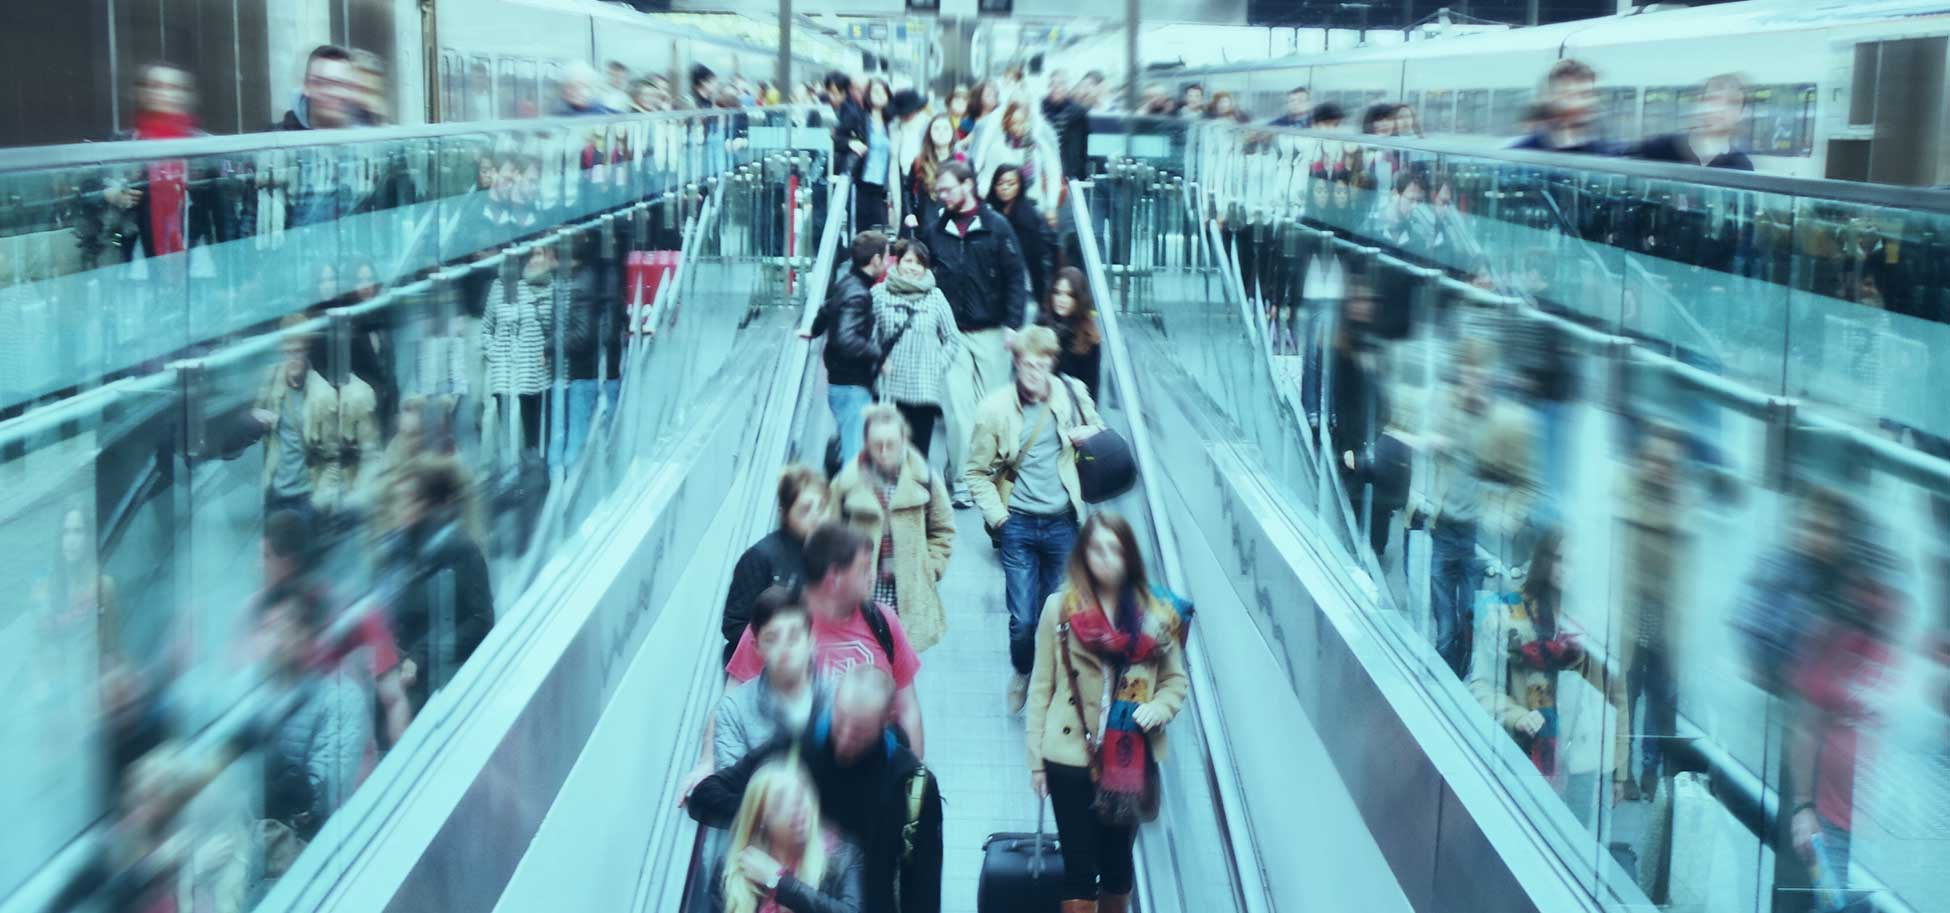 Veovo Introduces Airport Social Distancing Solutions for Safer Travel